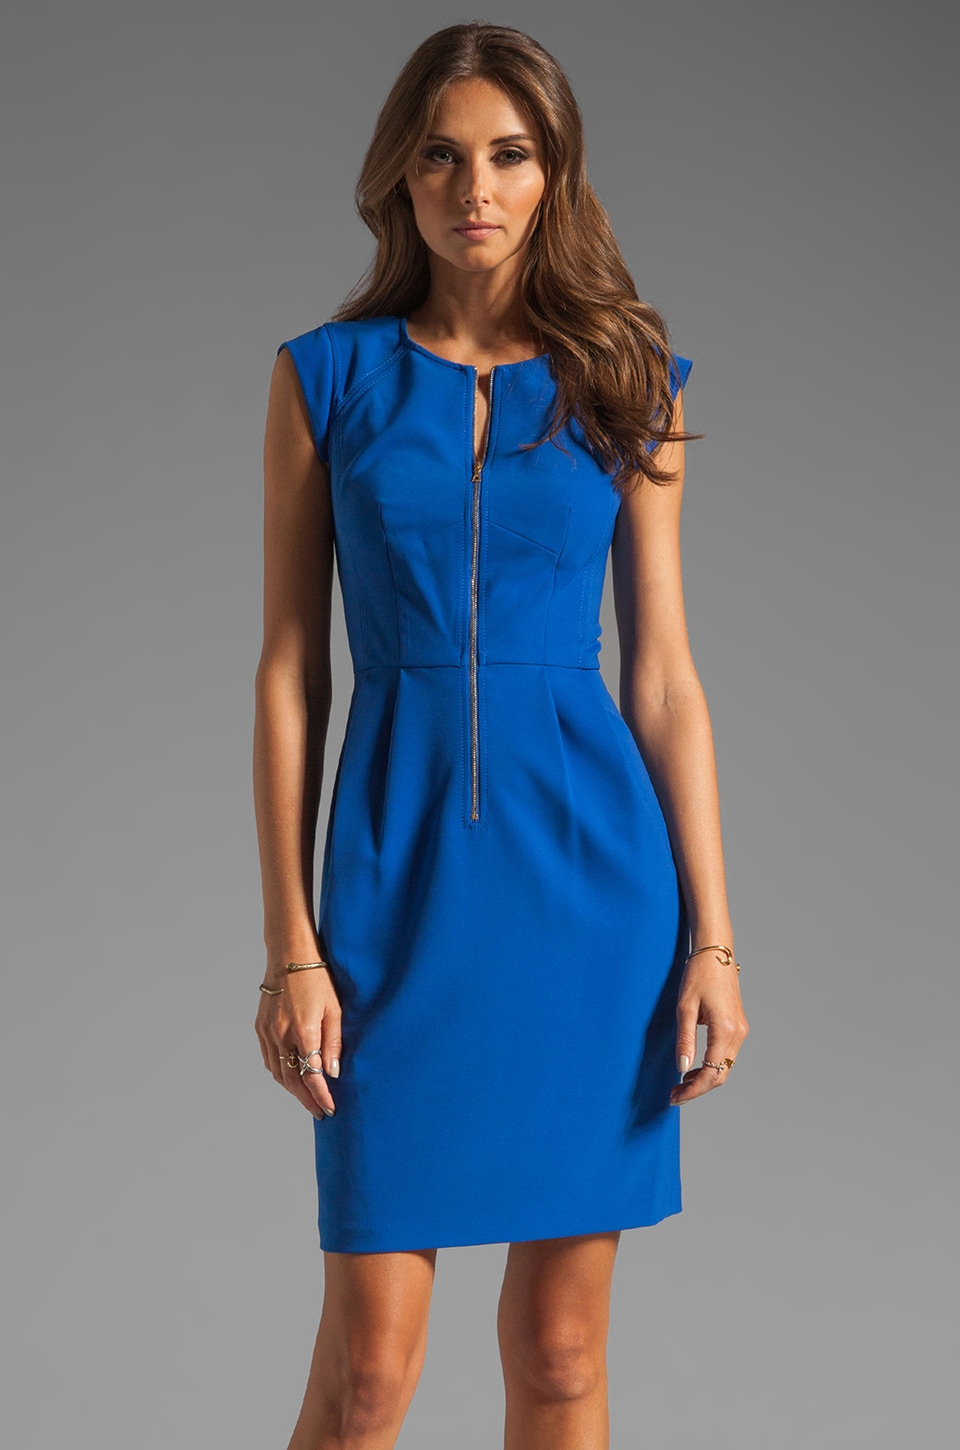 Rebecca Taylor Matte Crepe Short Sleeve Dress en Bleu Electrique